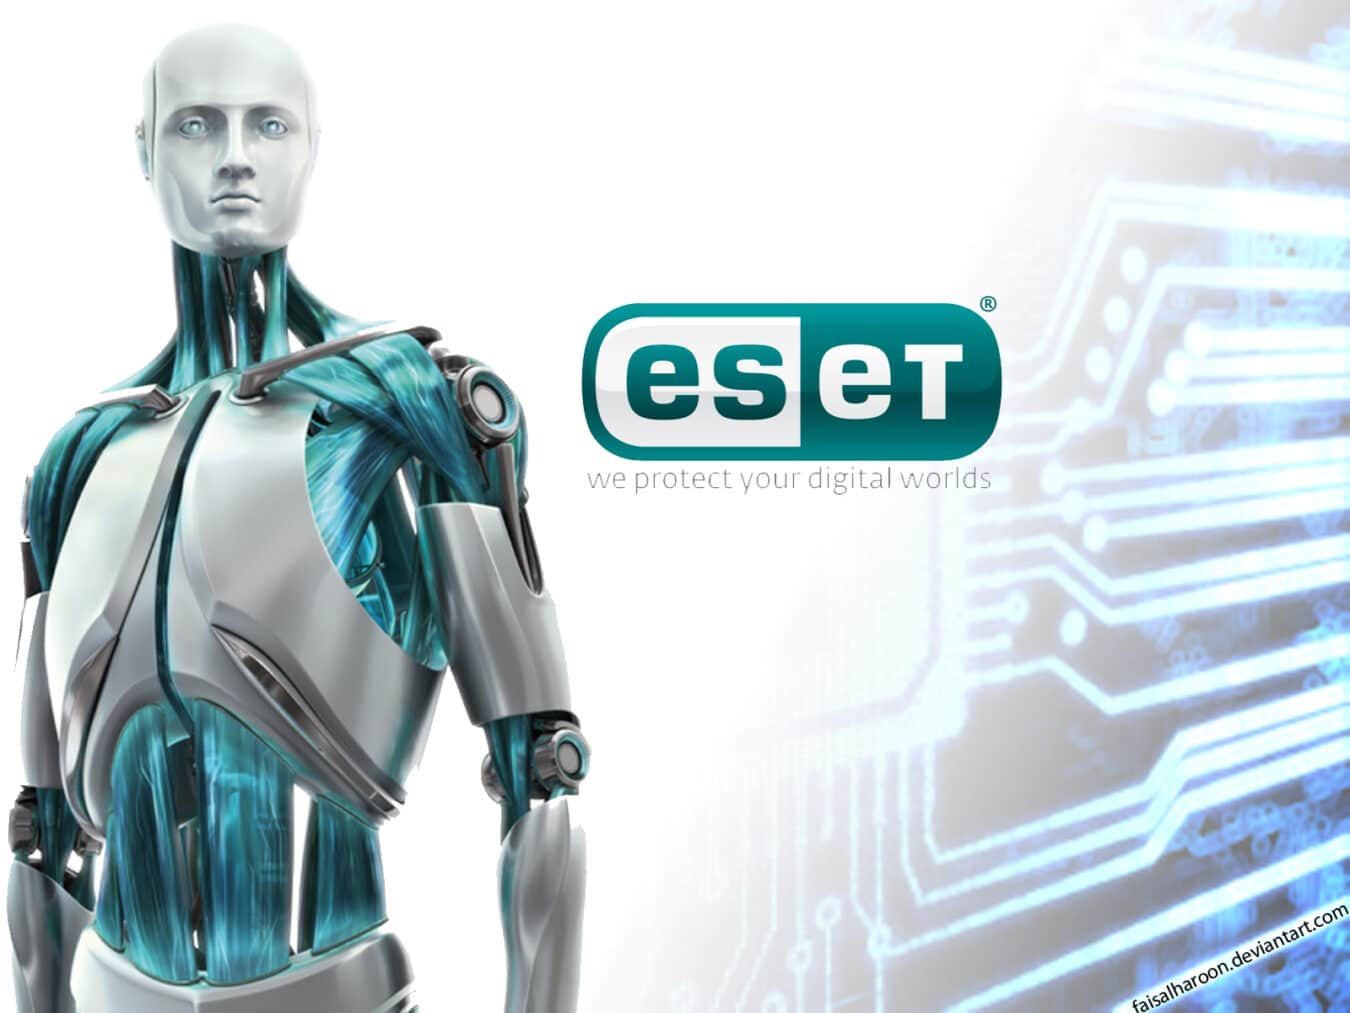 Photo de [NEWS] ESET présente la nouvelle version de son antivirus !